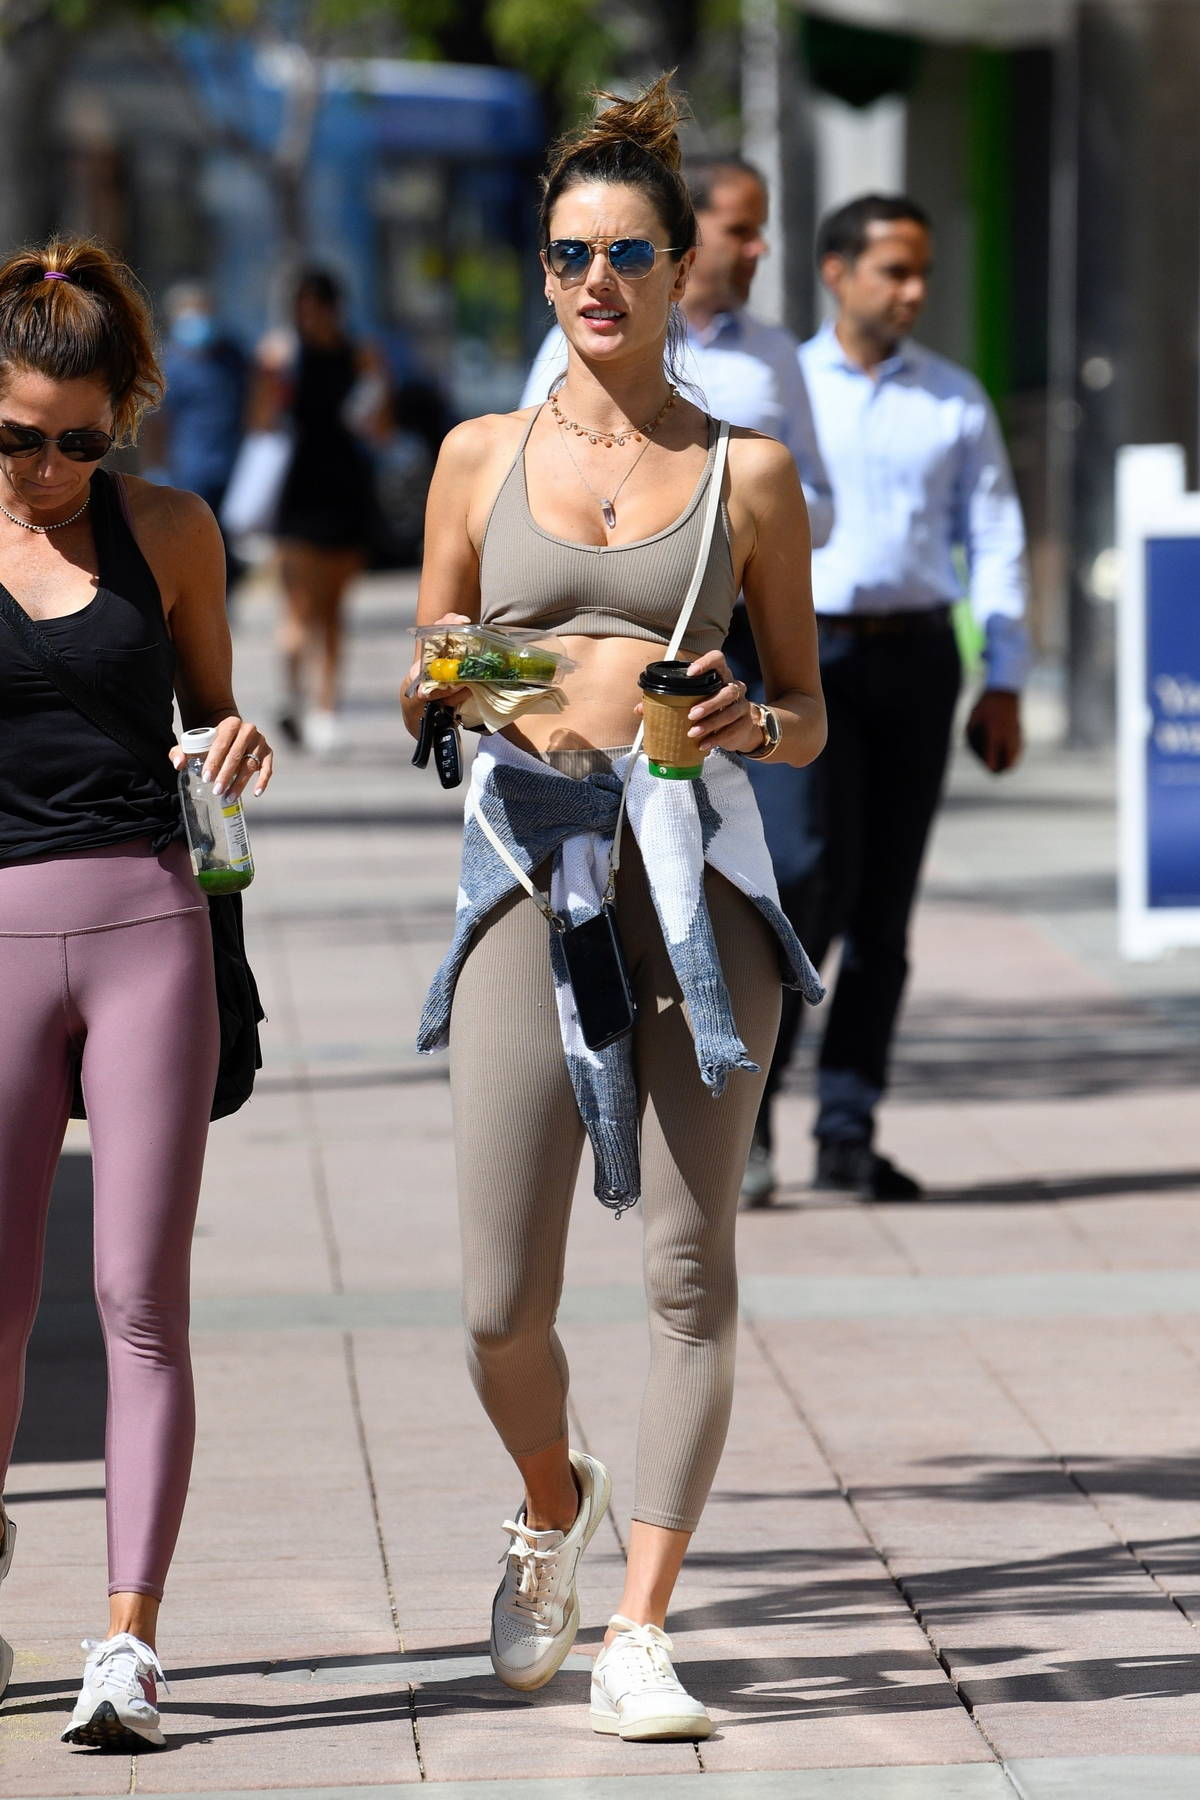 Alessandra Ambrosio shows of her svelte figure in grey sports bra and leggings while attending a Pilates class in Brentwood, California